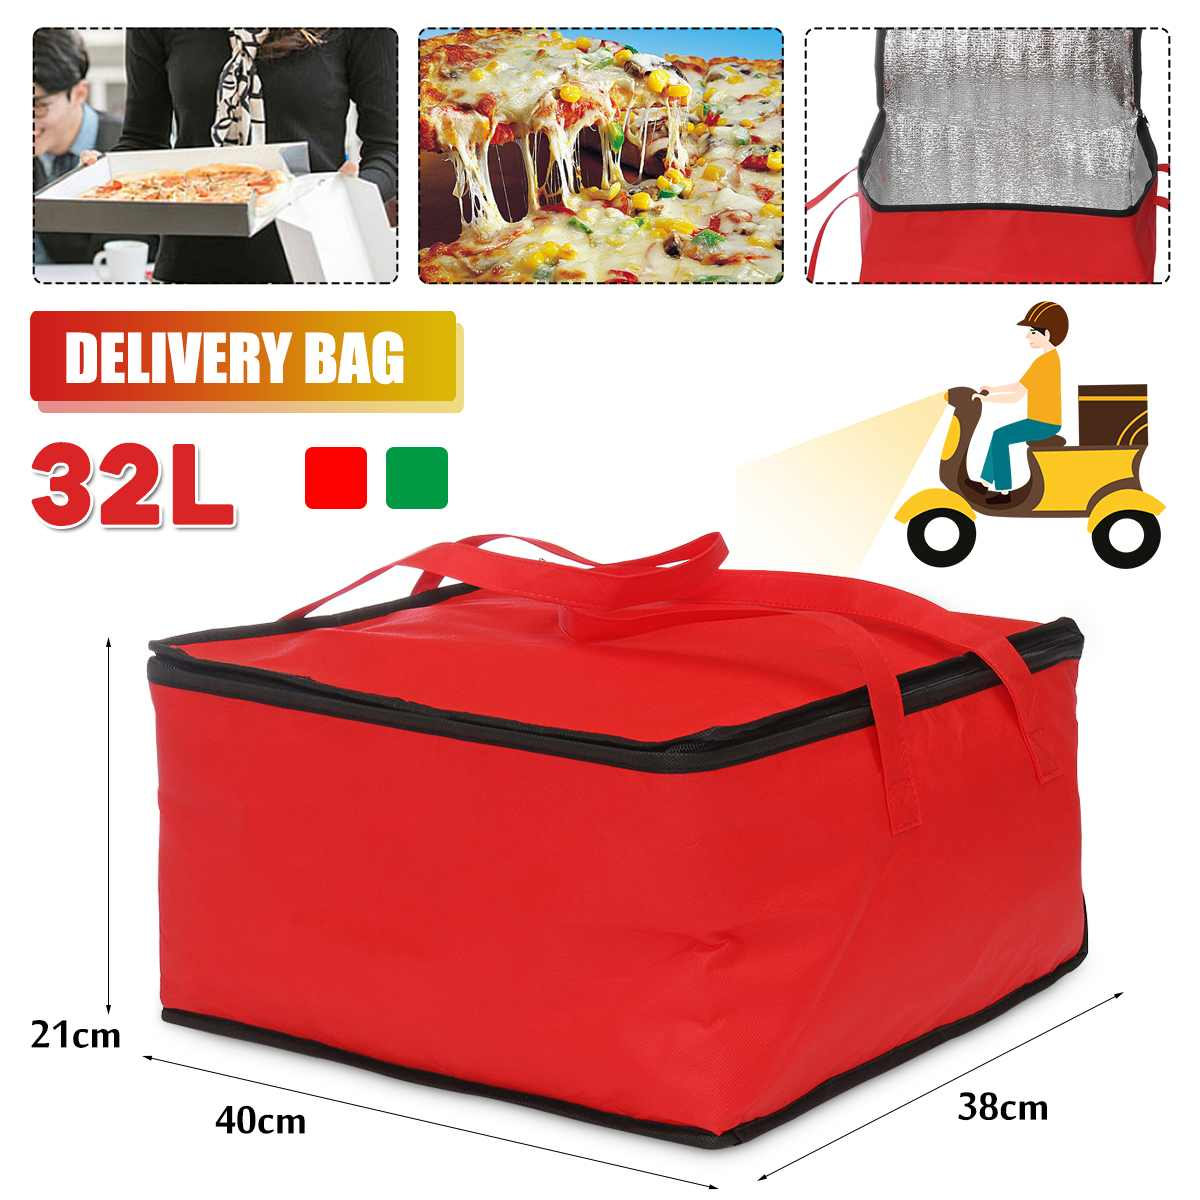 32L Waterproof Insulated Bag Lunch Cooler Bag Insulation Folding Picnic Portable Ice Pack Food Thermal Food Delivery Bag Pizza